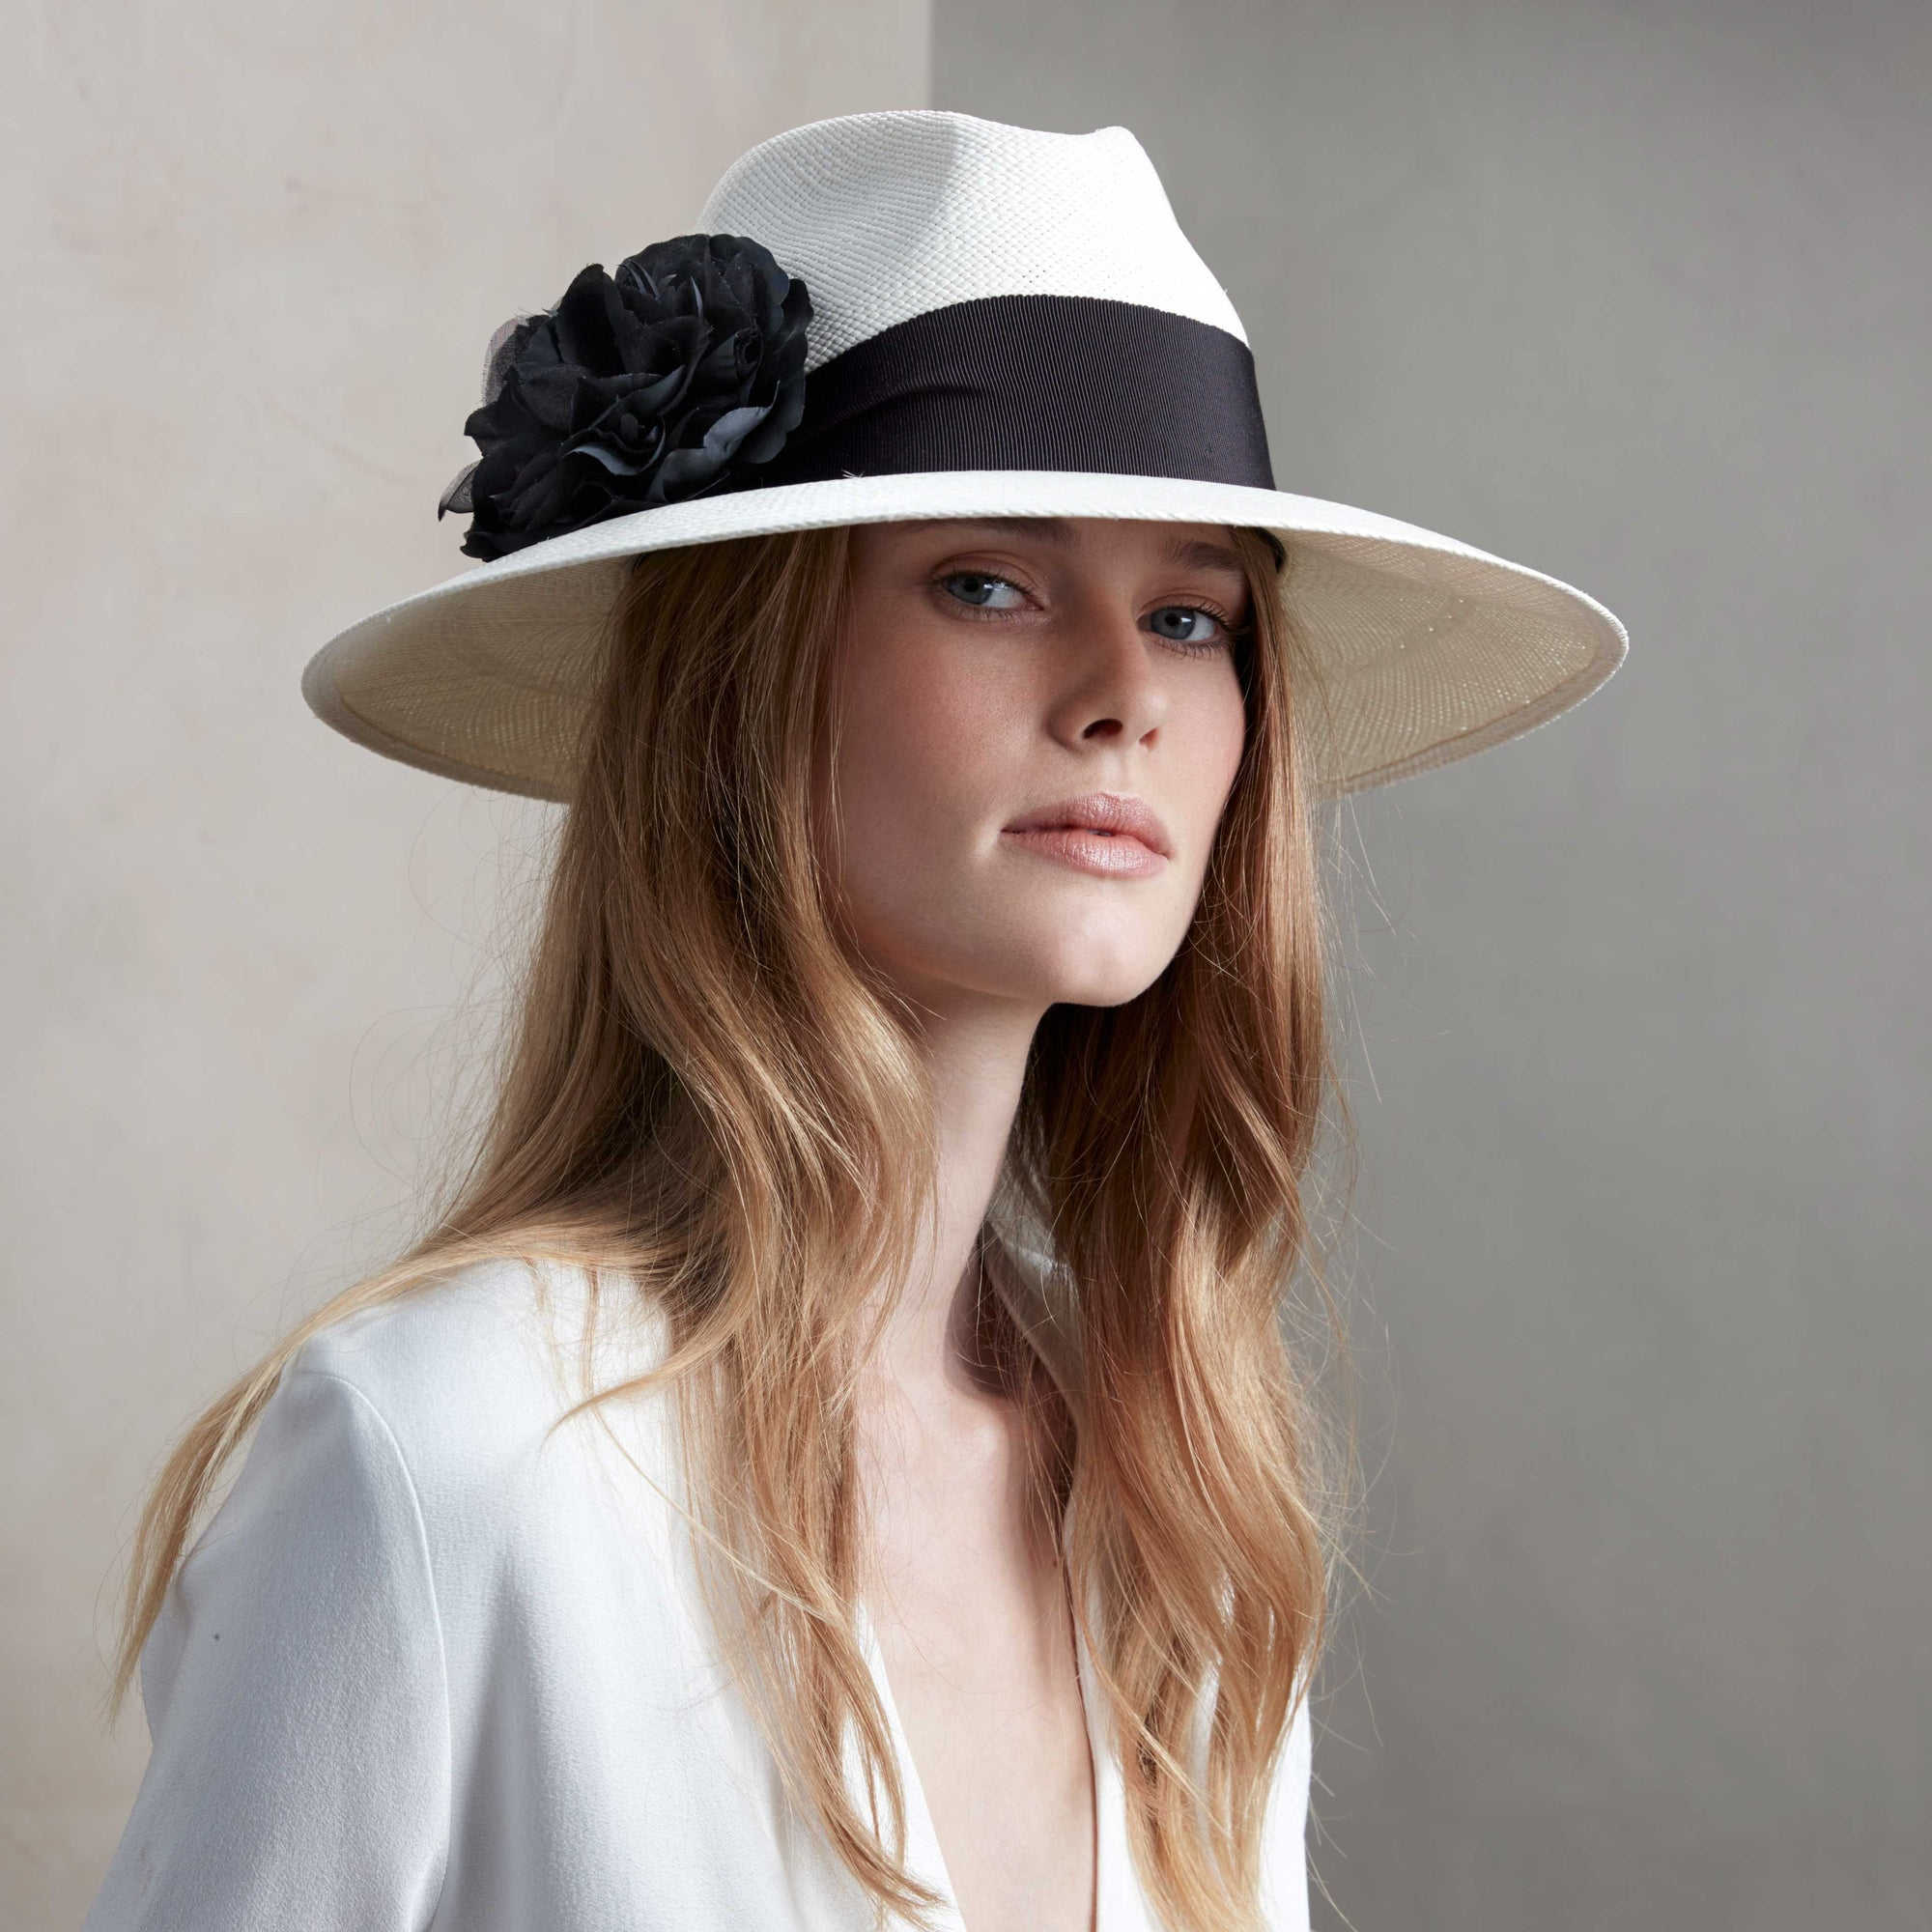 Luxor Panama hat - Women's hats - Lock & Co. Hatters London UK